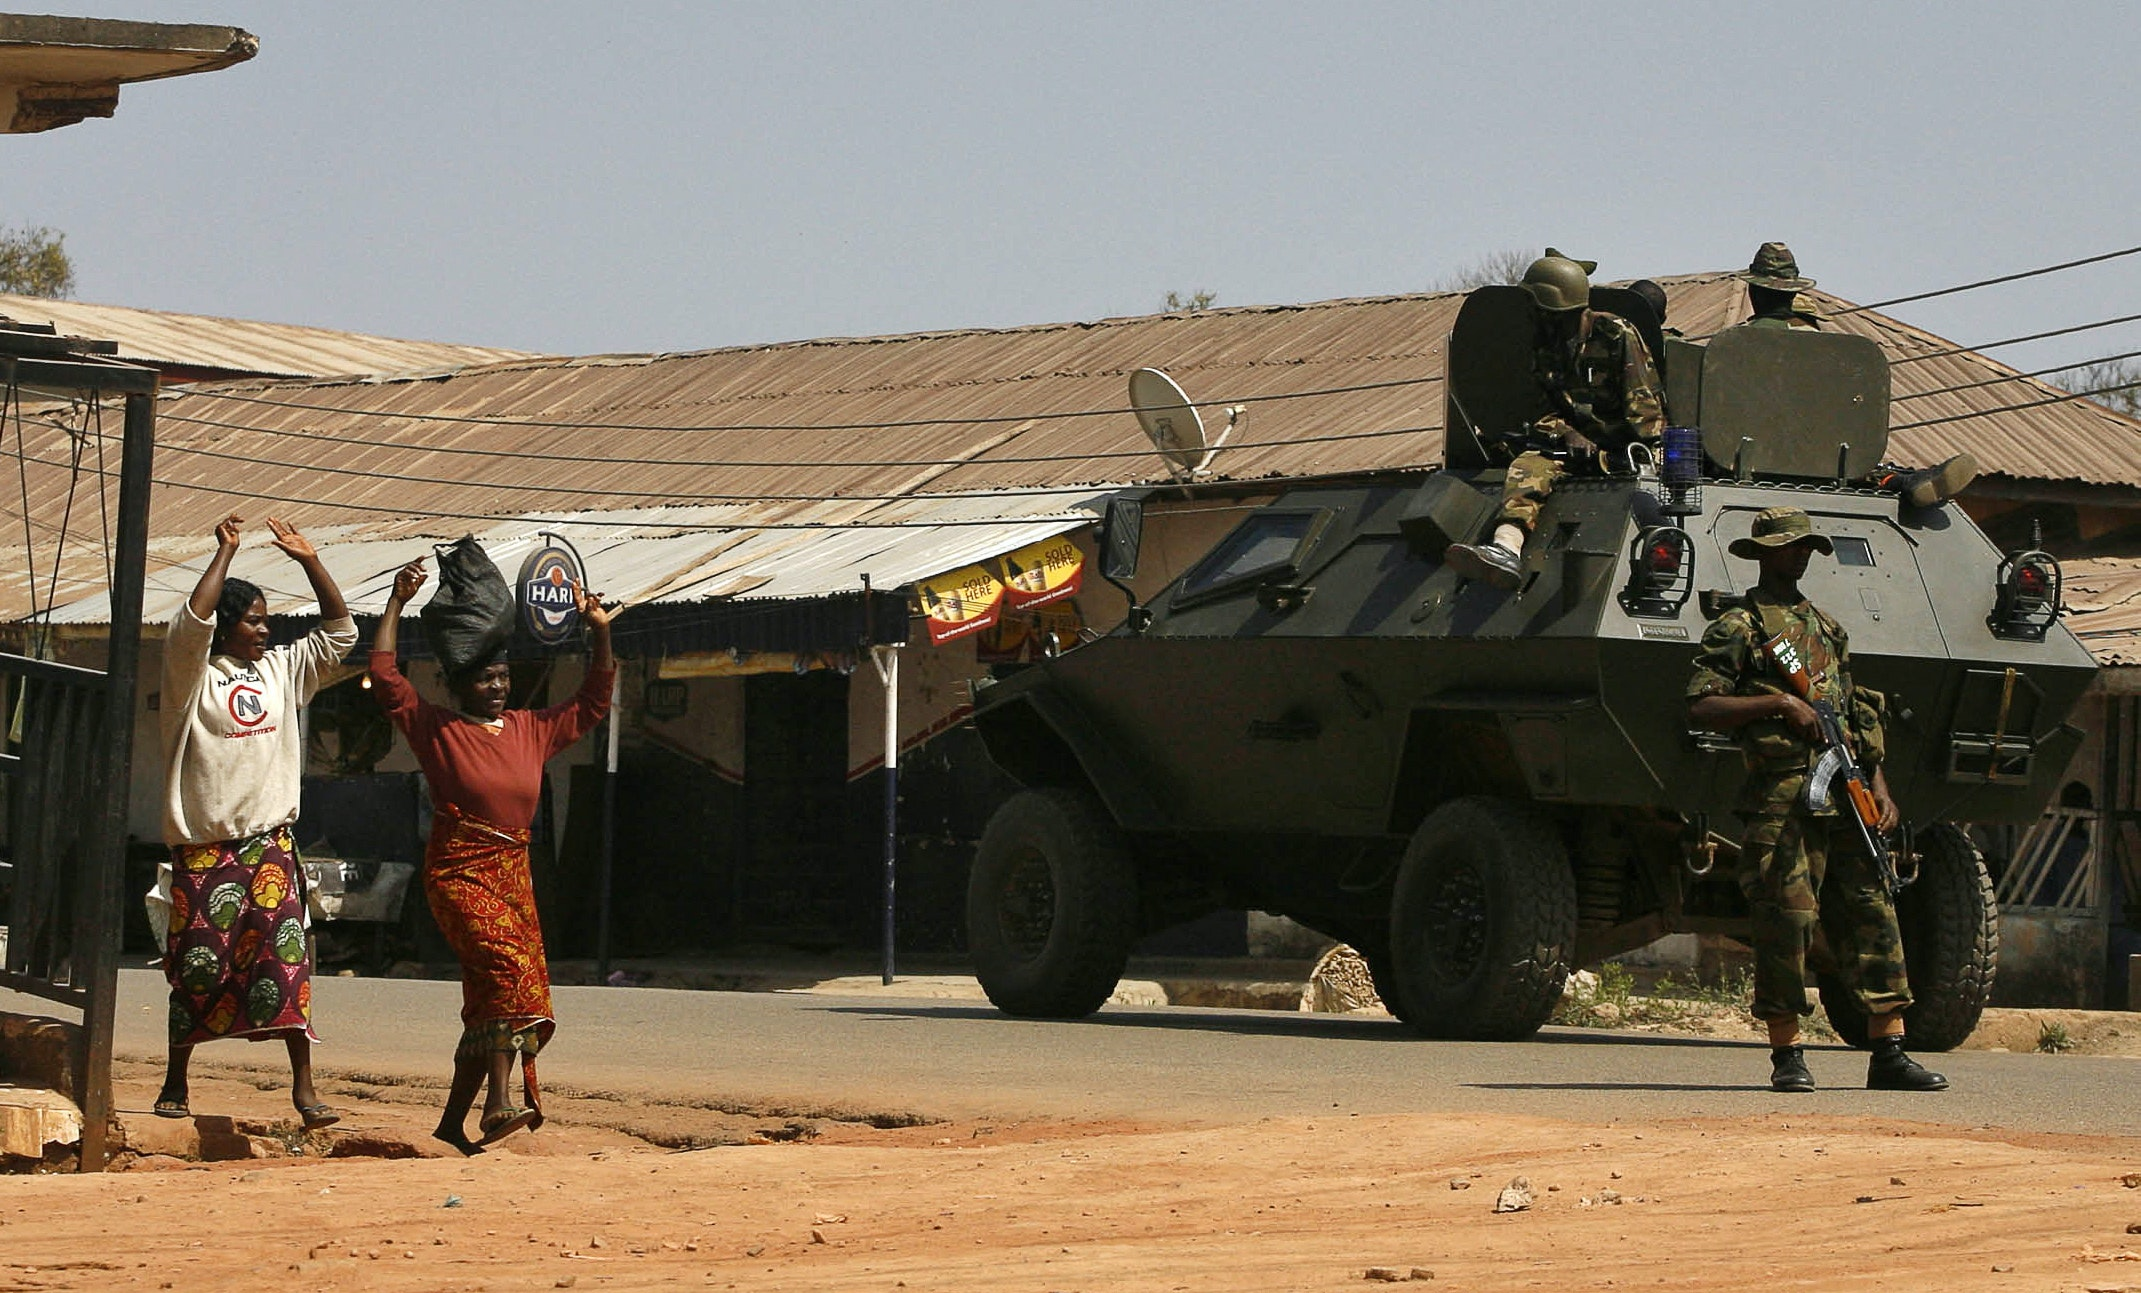 How using the military in Nigeria is causing, not solving problems